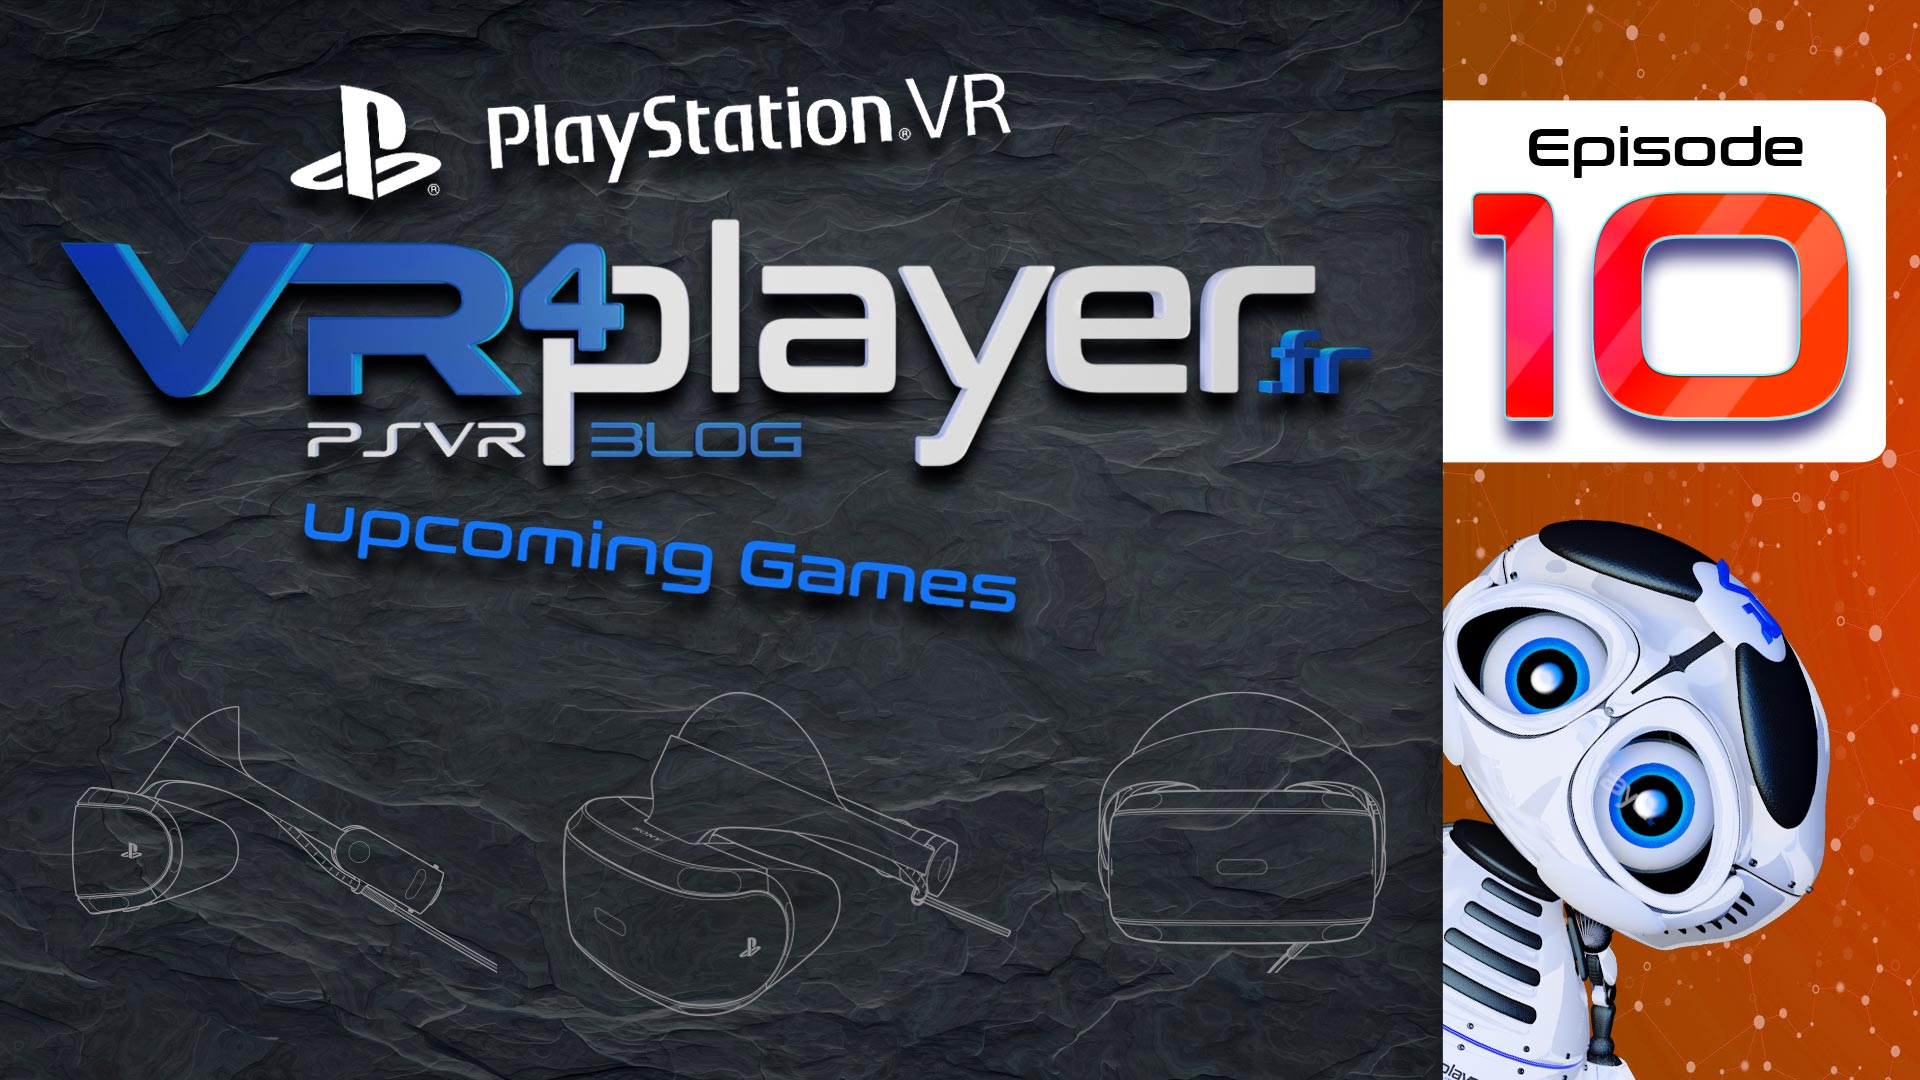 PlayStation VR Upcoming Games VR4Player.fr Épisode 10